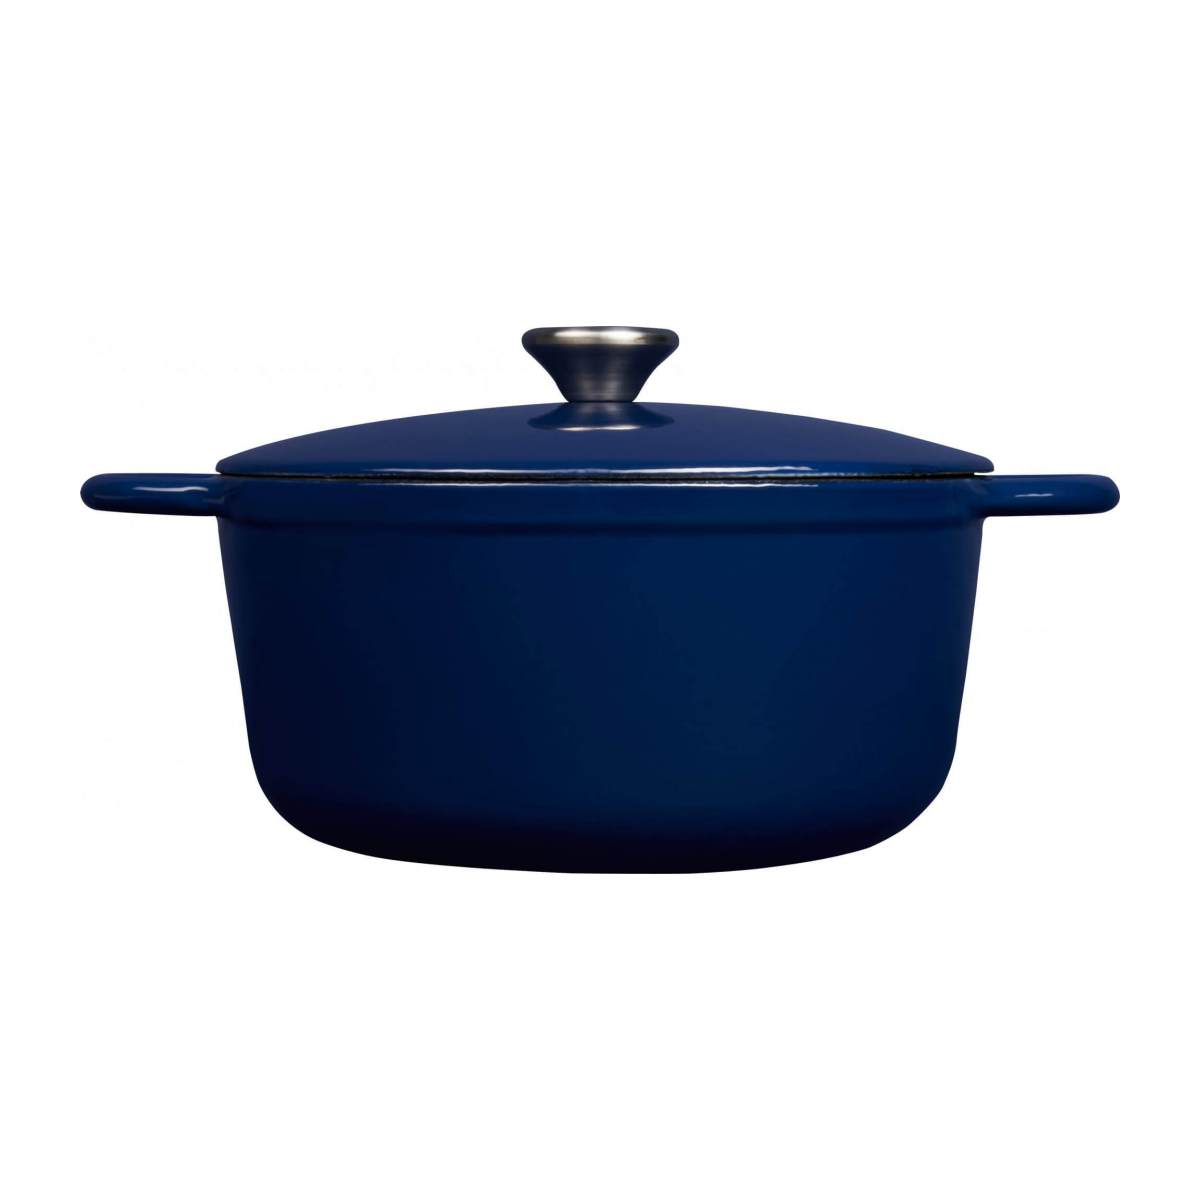 Cast iron cooker 23 cm, blue n°3